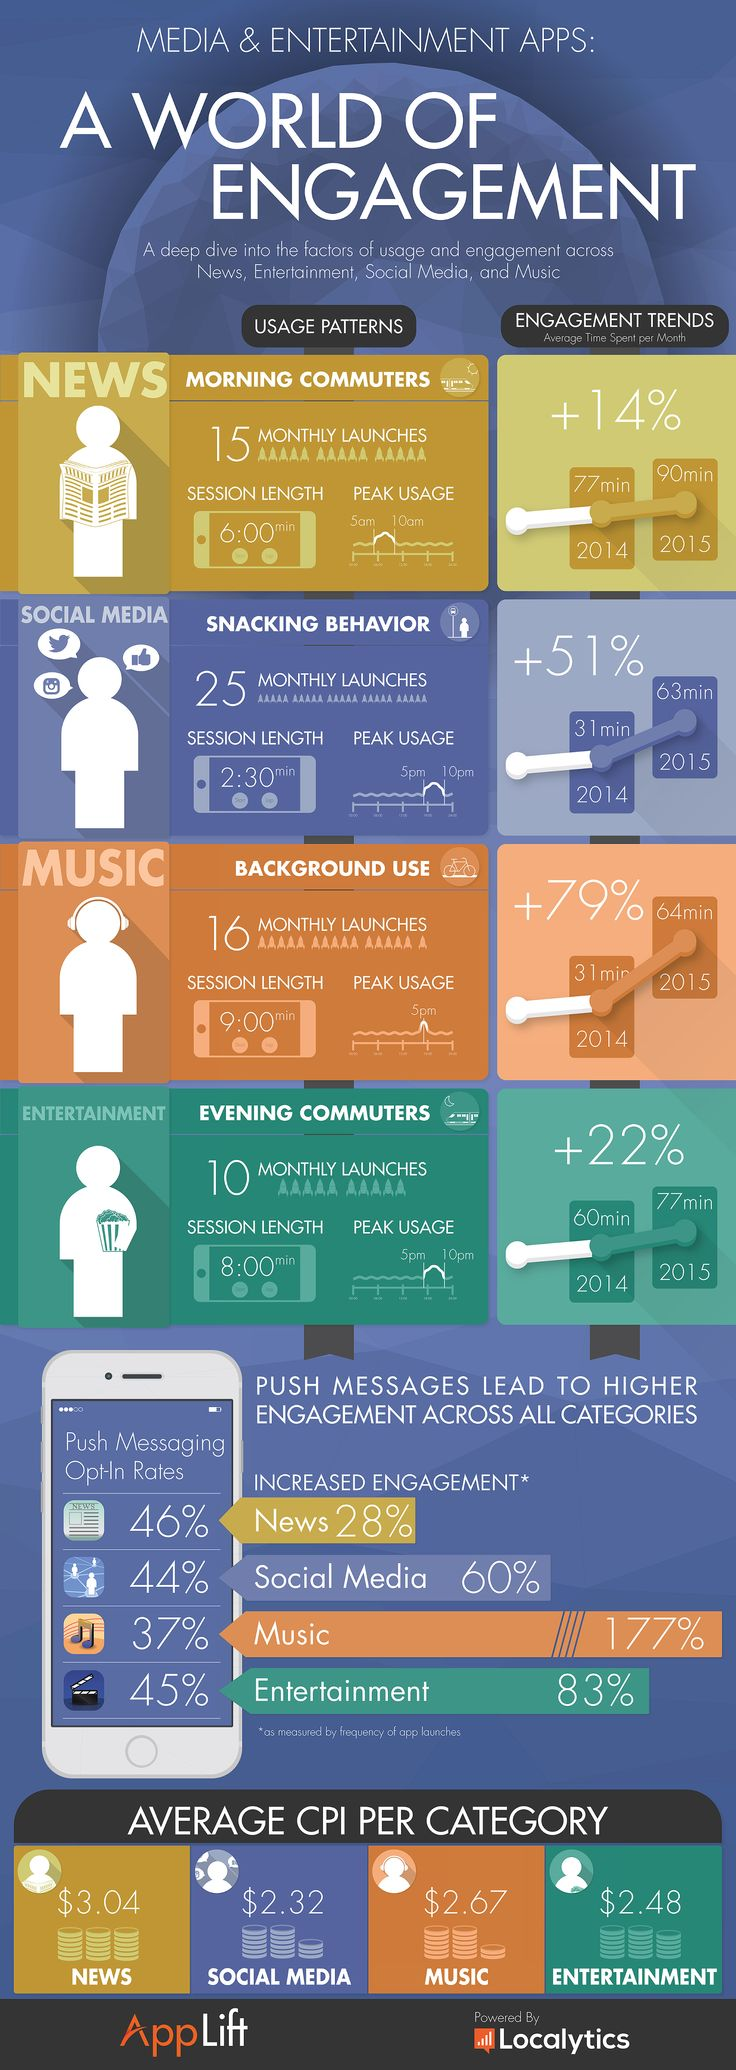 Factors of Engagement in Media & Entertainment Apps